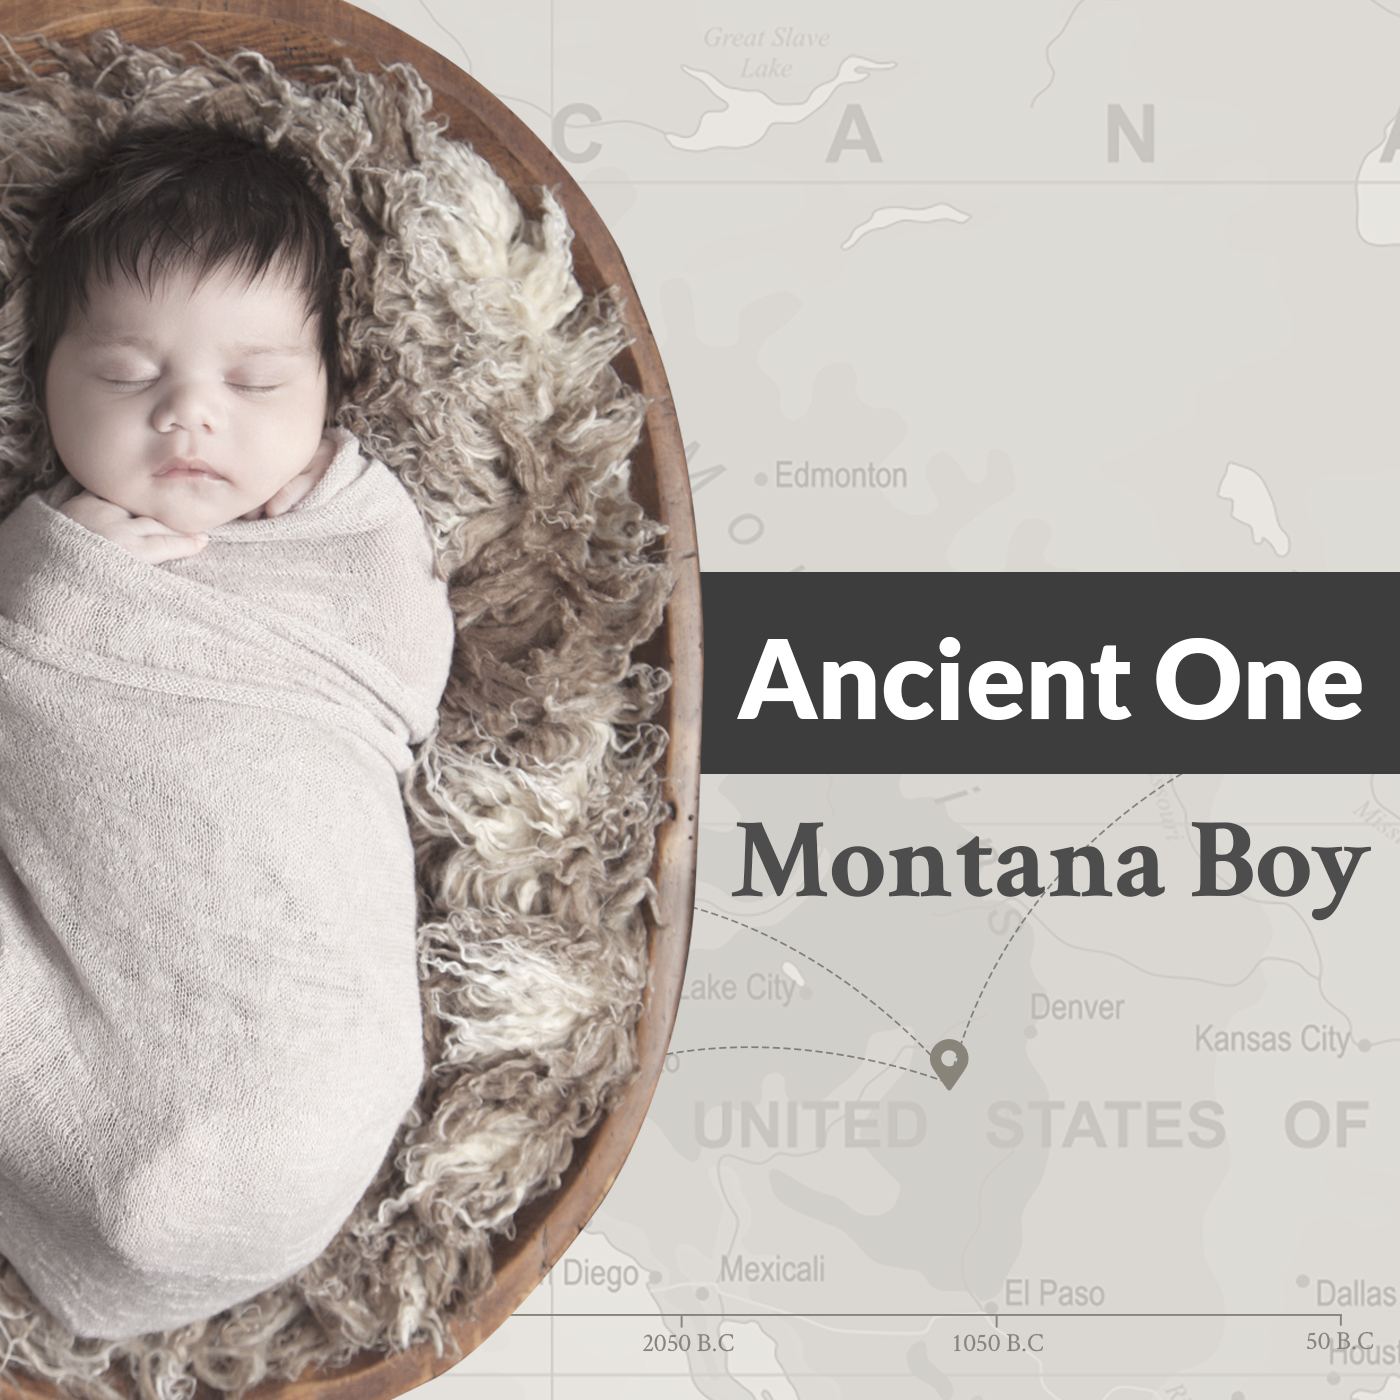 The Ancient One/ Montana Boy